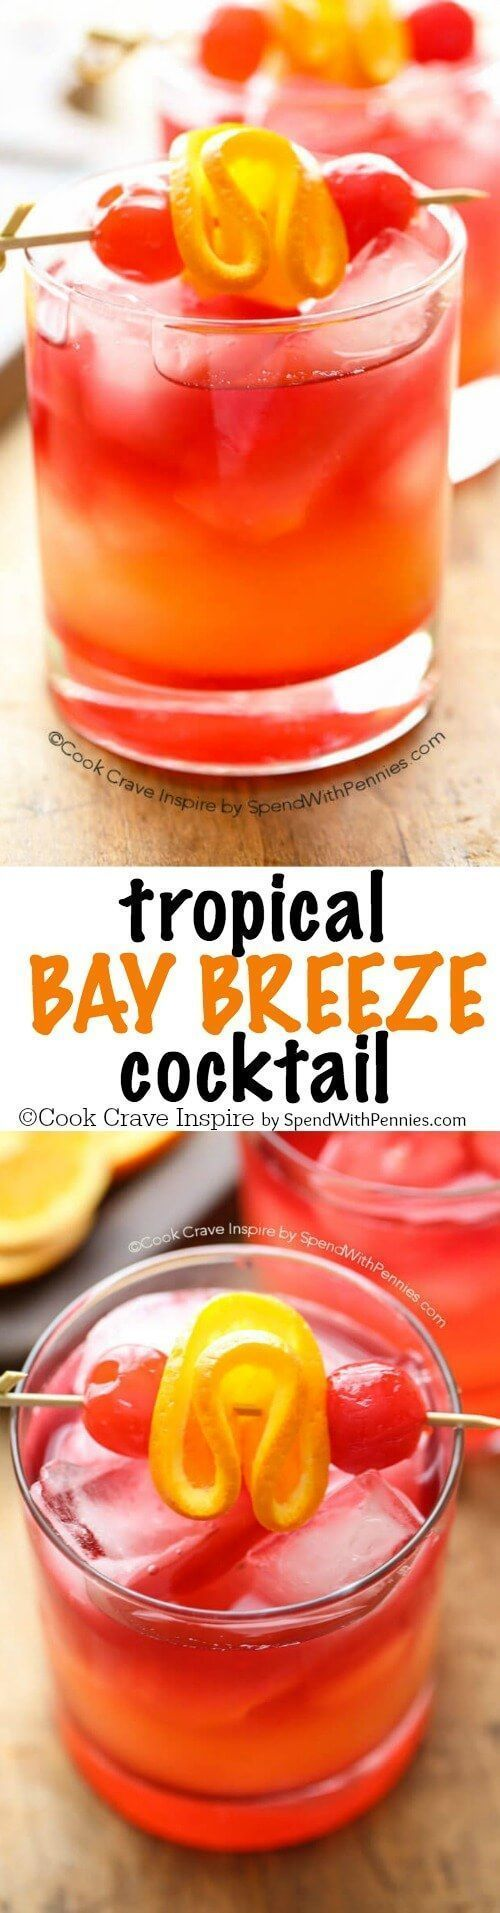 Tropical Bay Breeze Cocktail